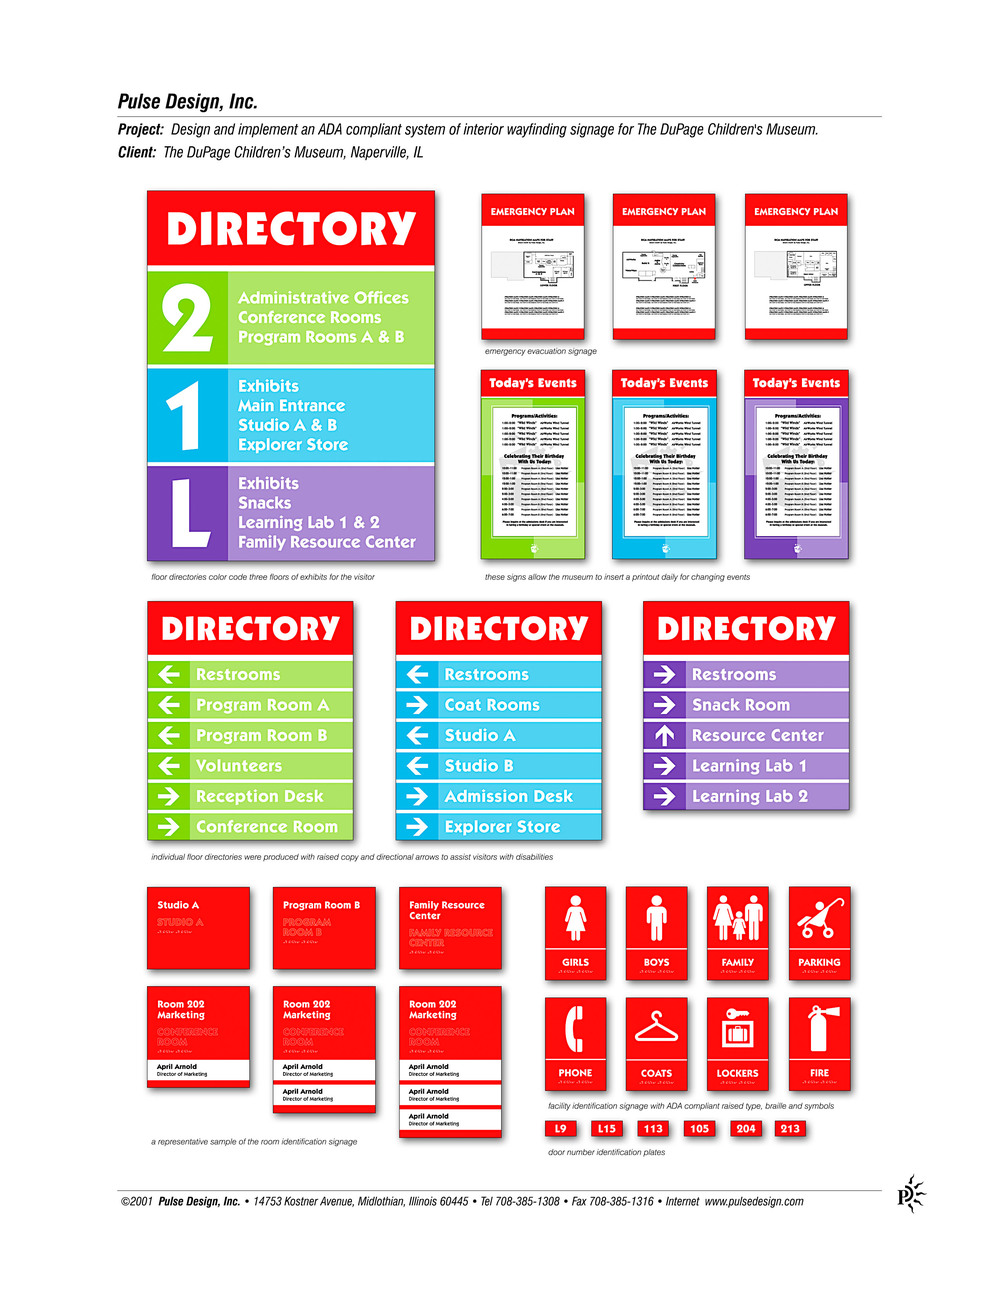 DCM-Wayfinding-Internal-Pulse-Design-Inc.jpg